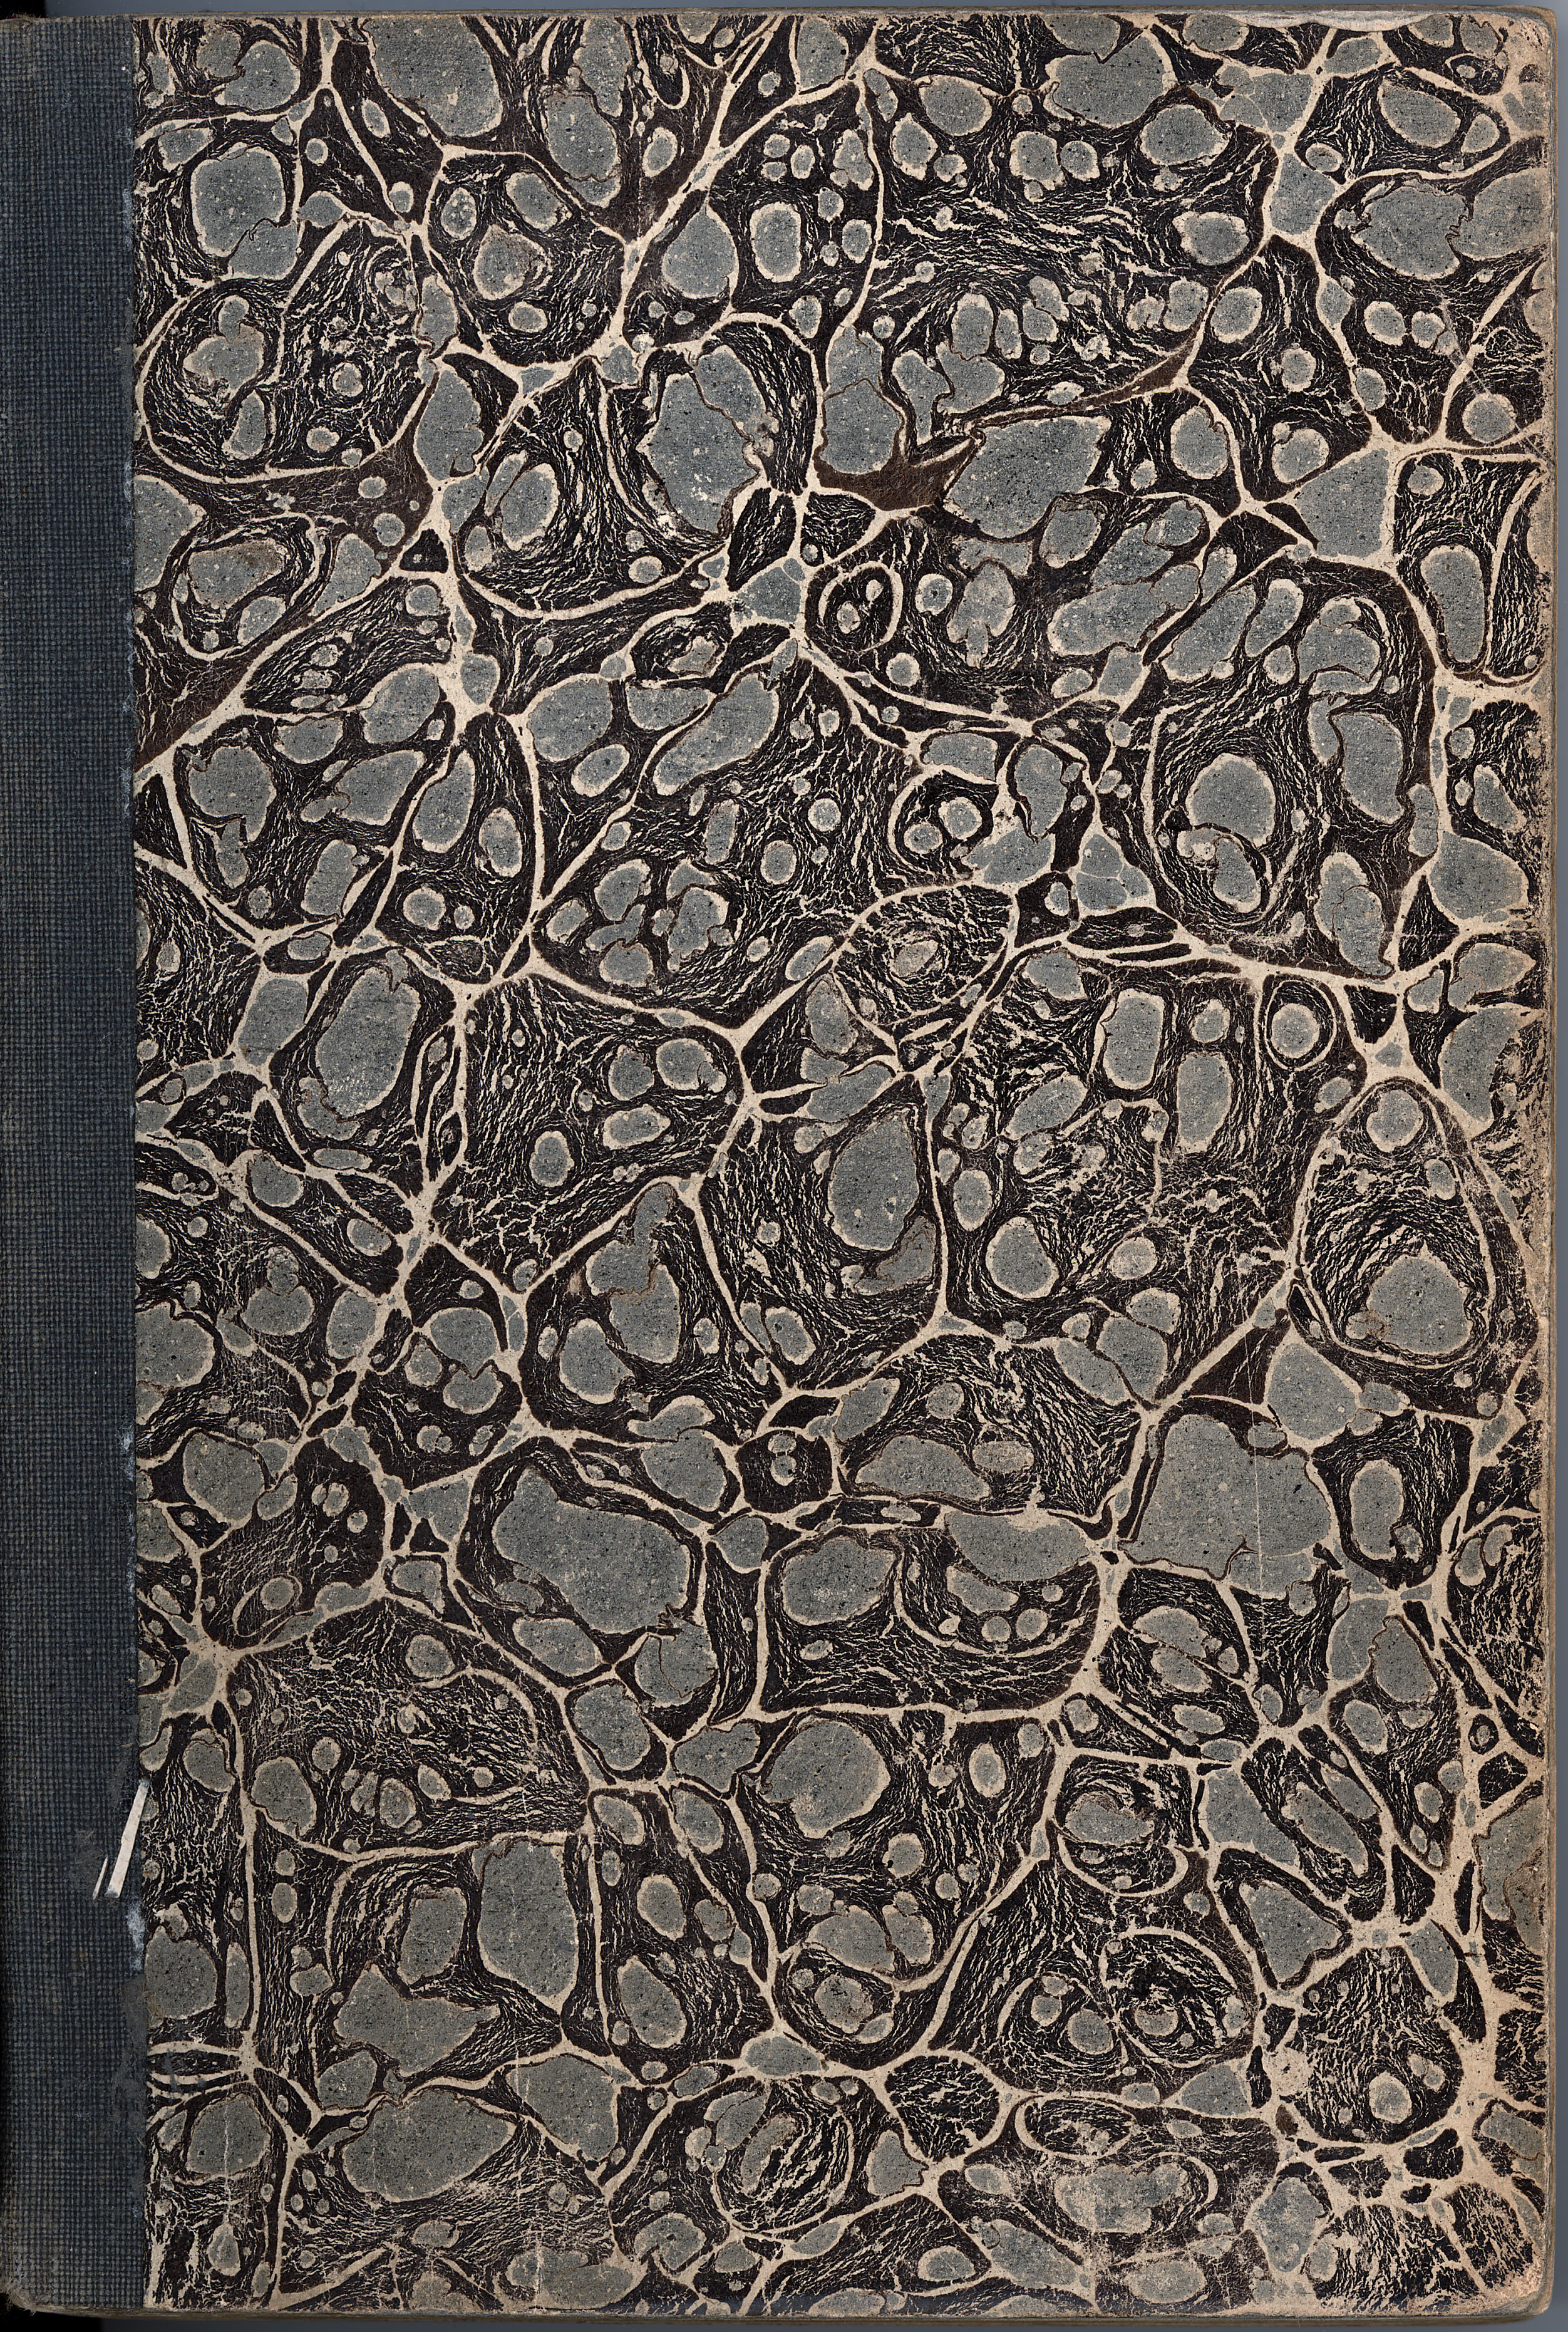 Book Inside Cover Patterned Paper ~ Images about marbled papers on pinterest turkish